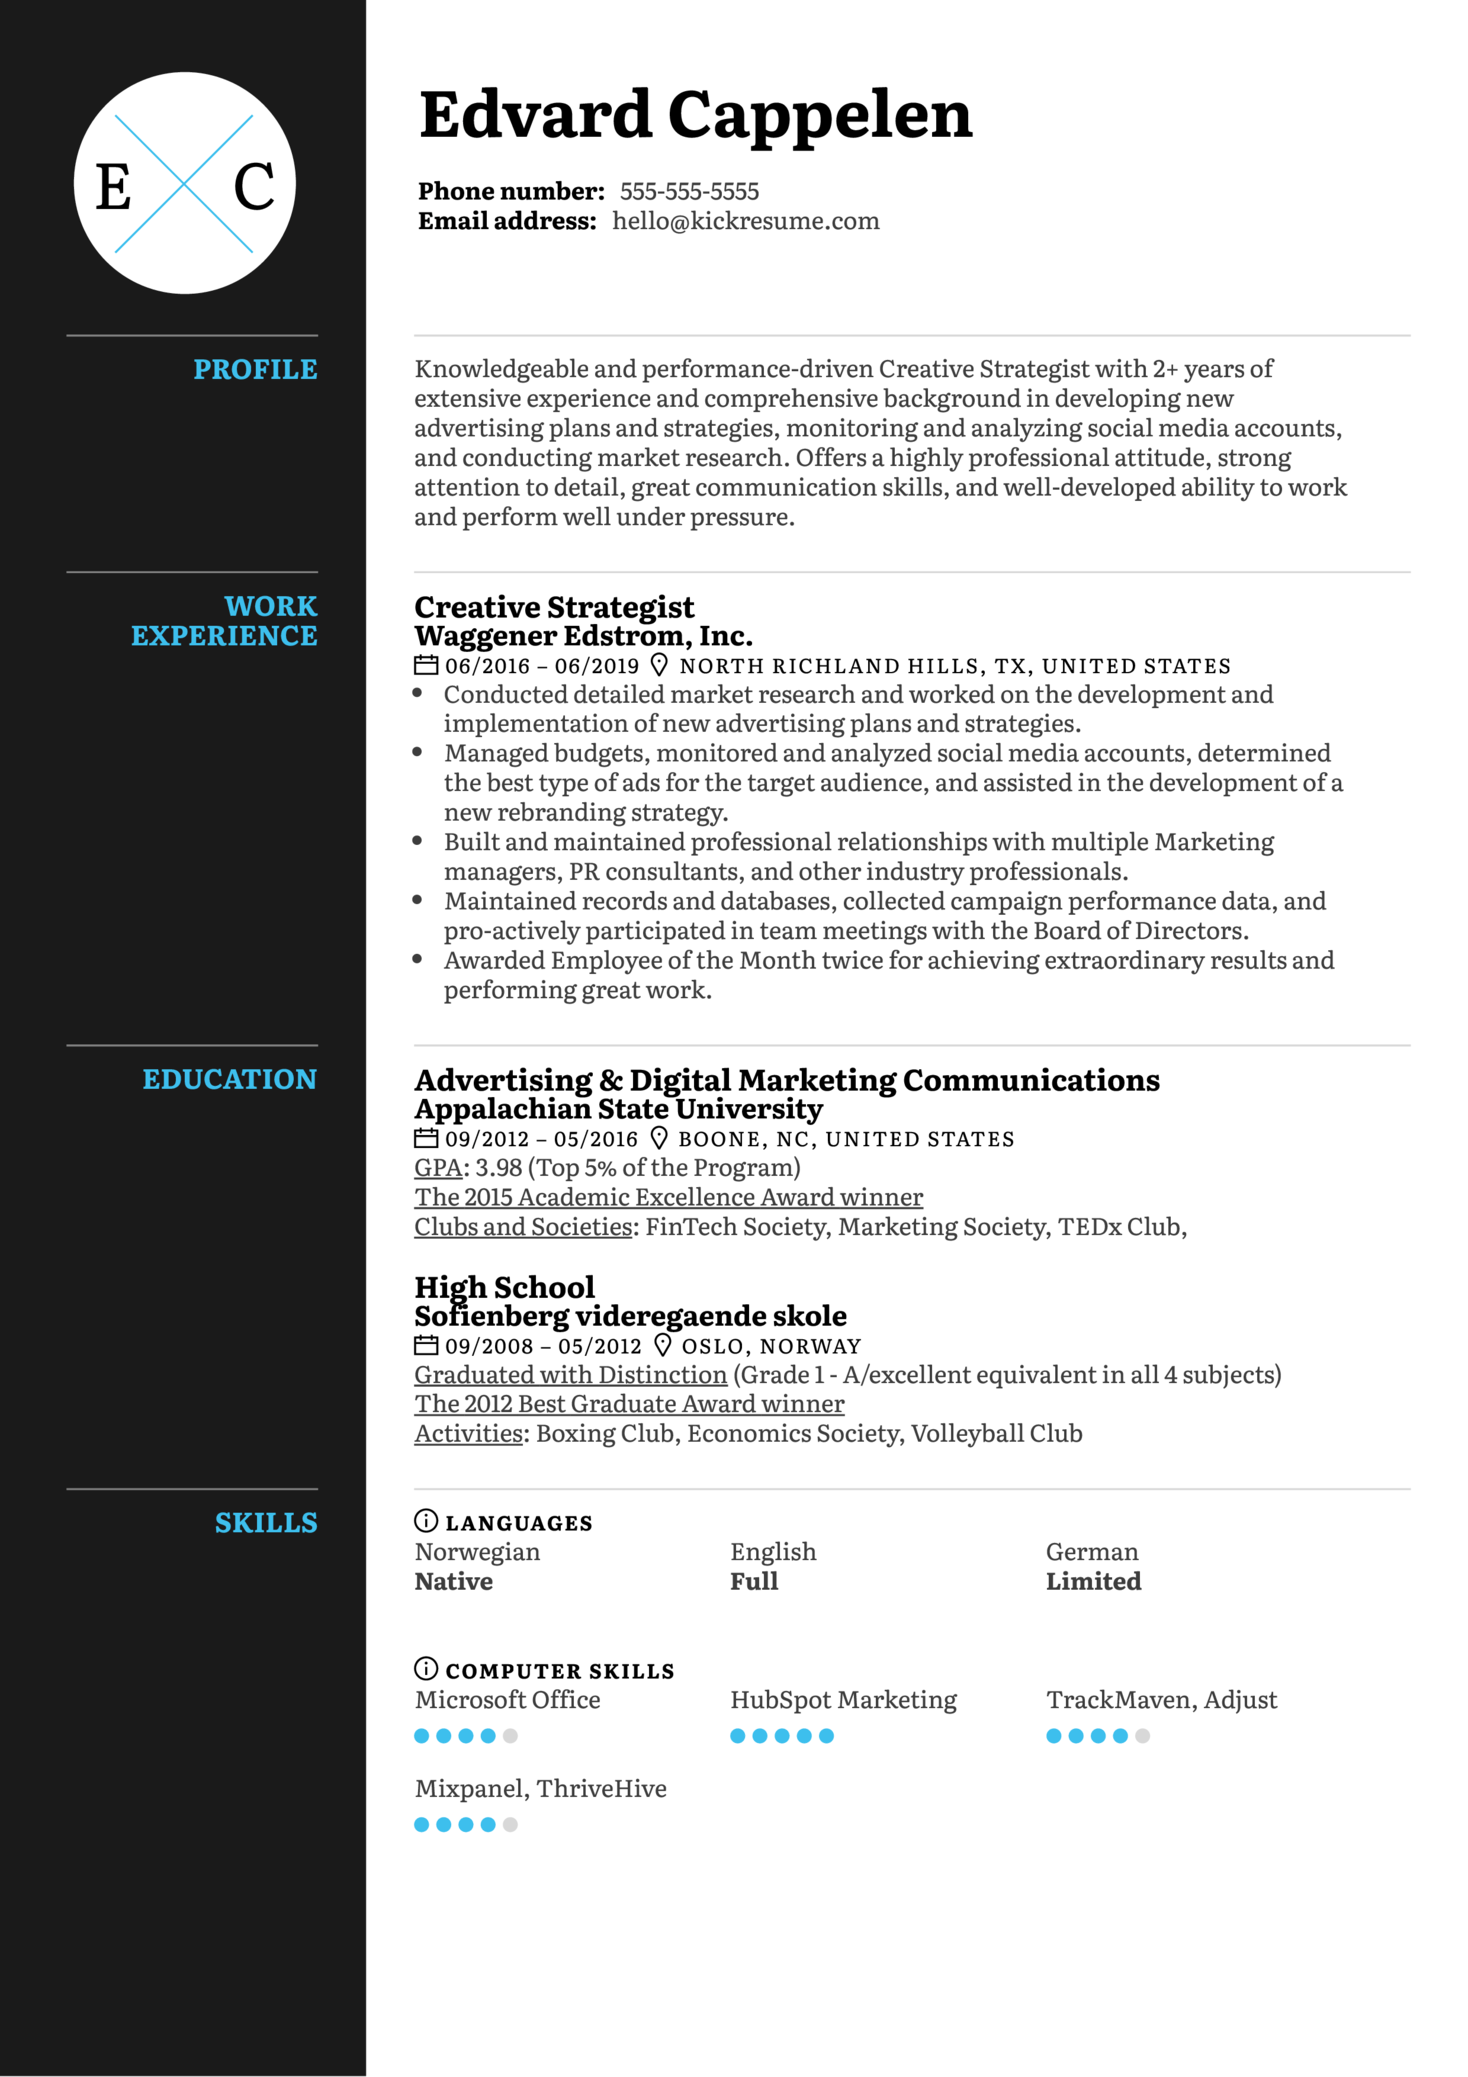 Creative Strategist Resume Sample